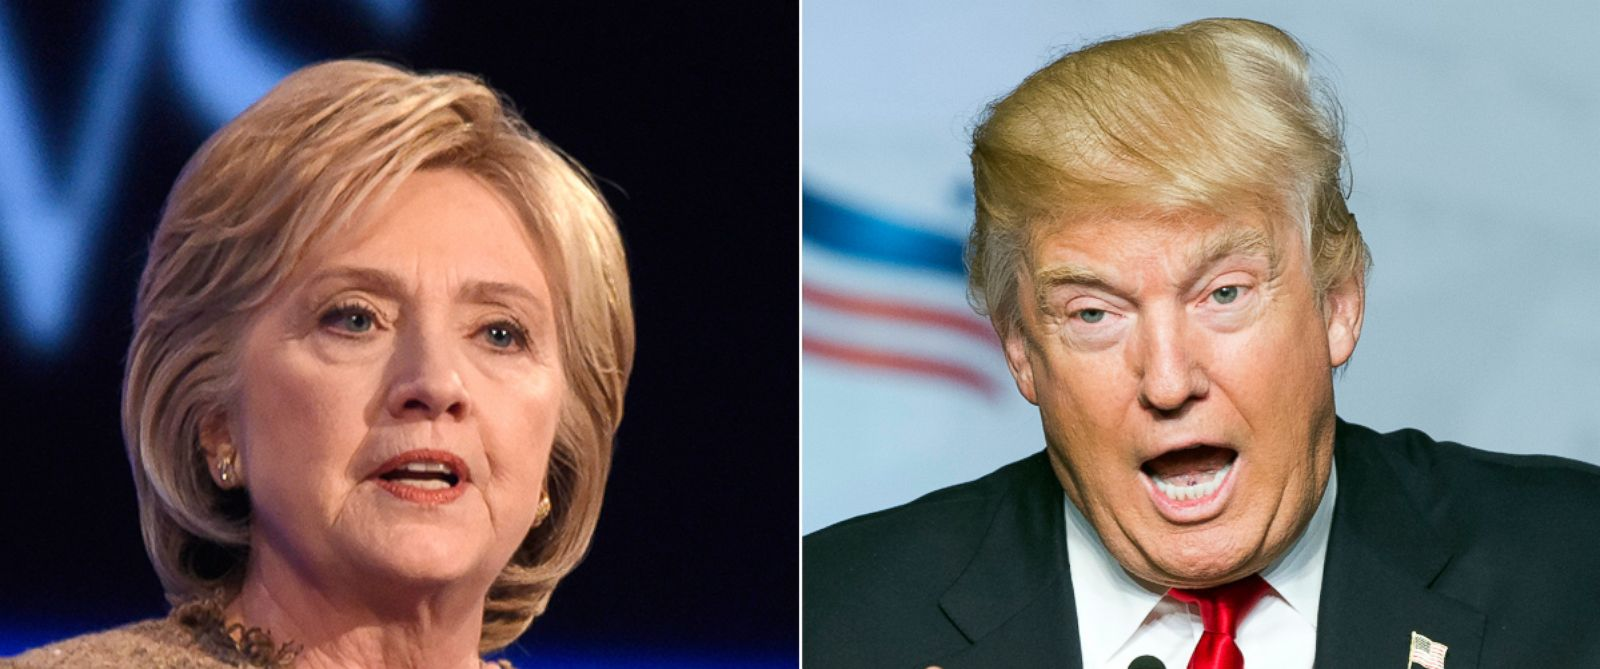 Hillary Clinton Clobbers Donald Trump in Fundraising, Reports Show